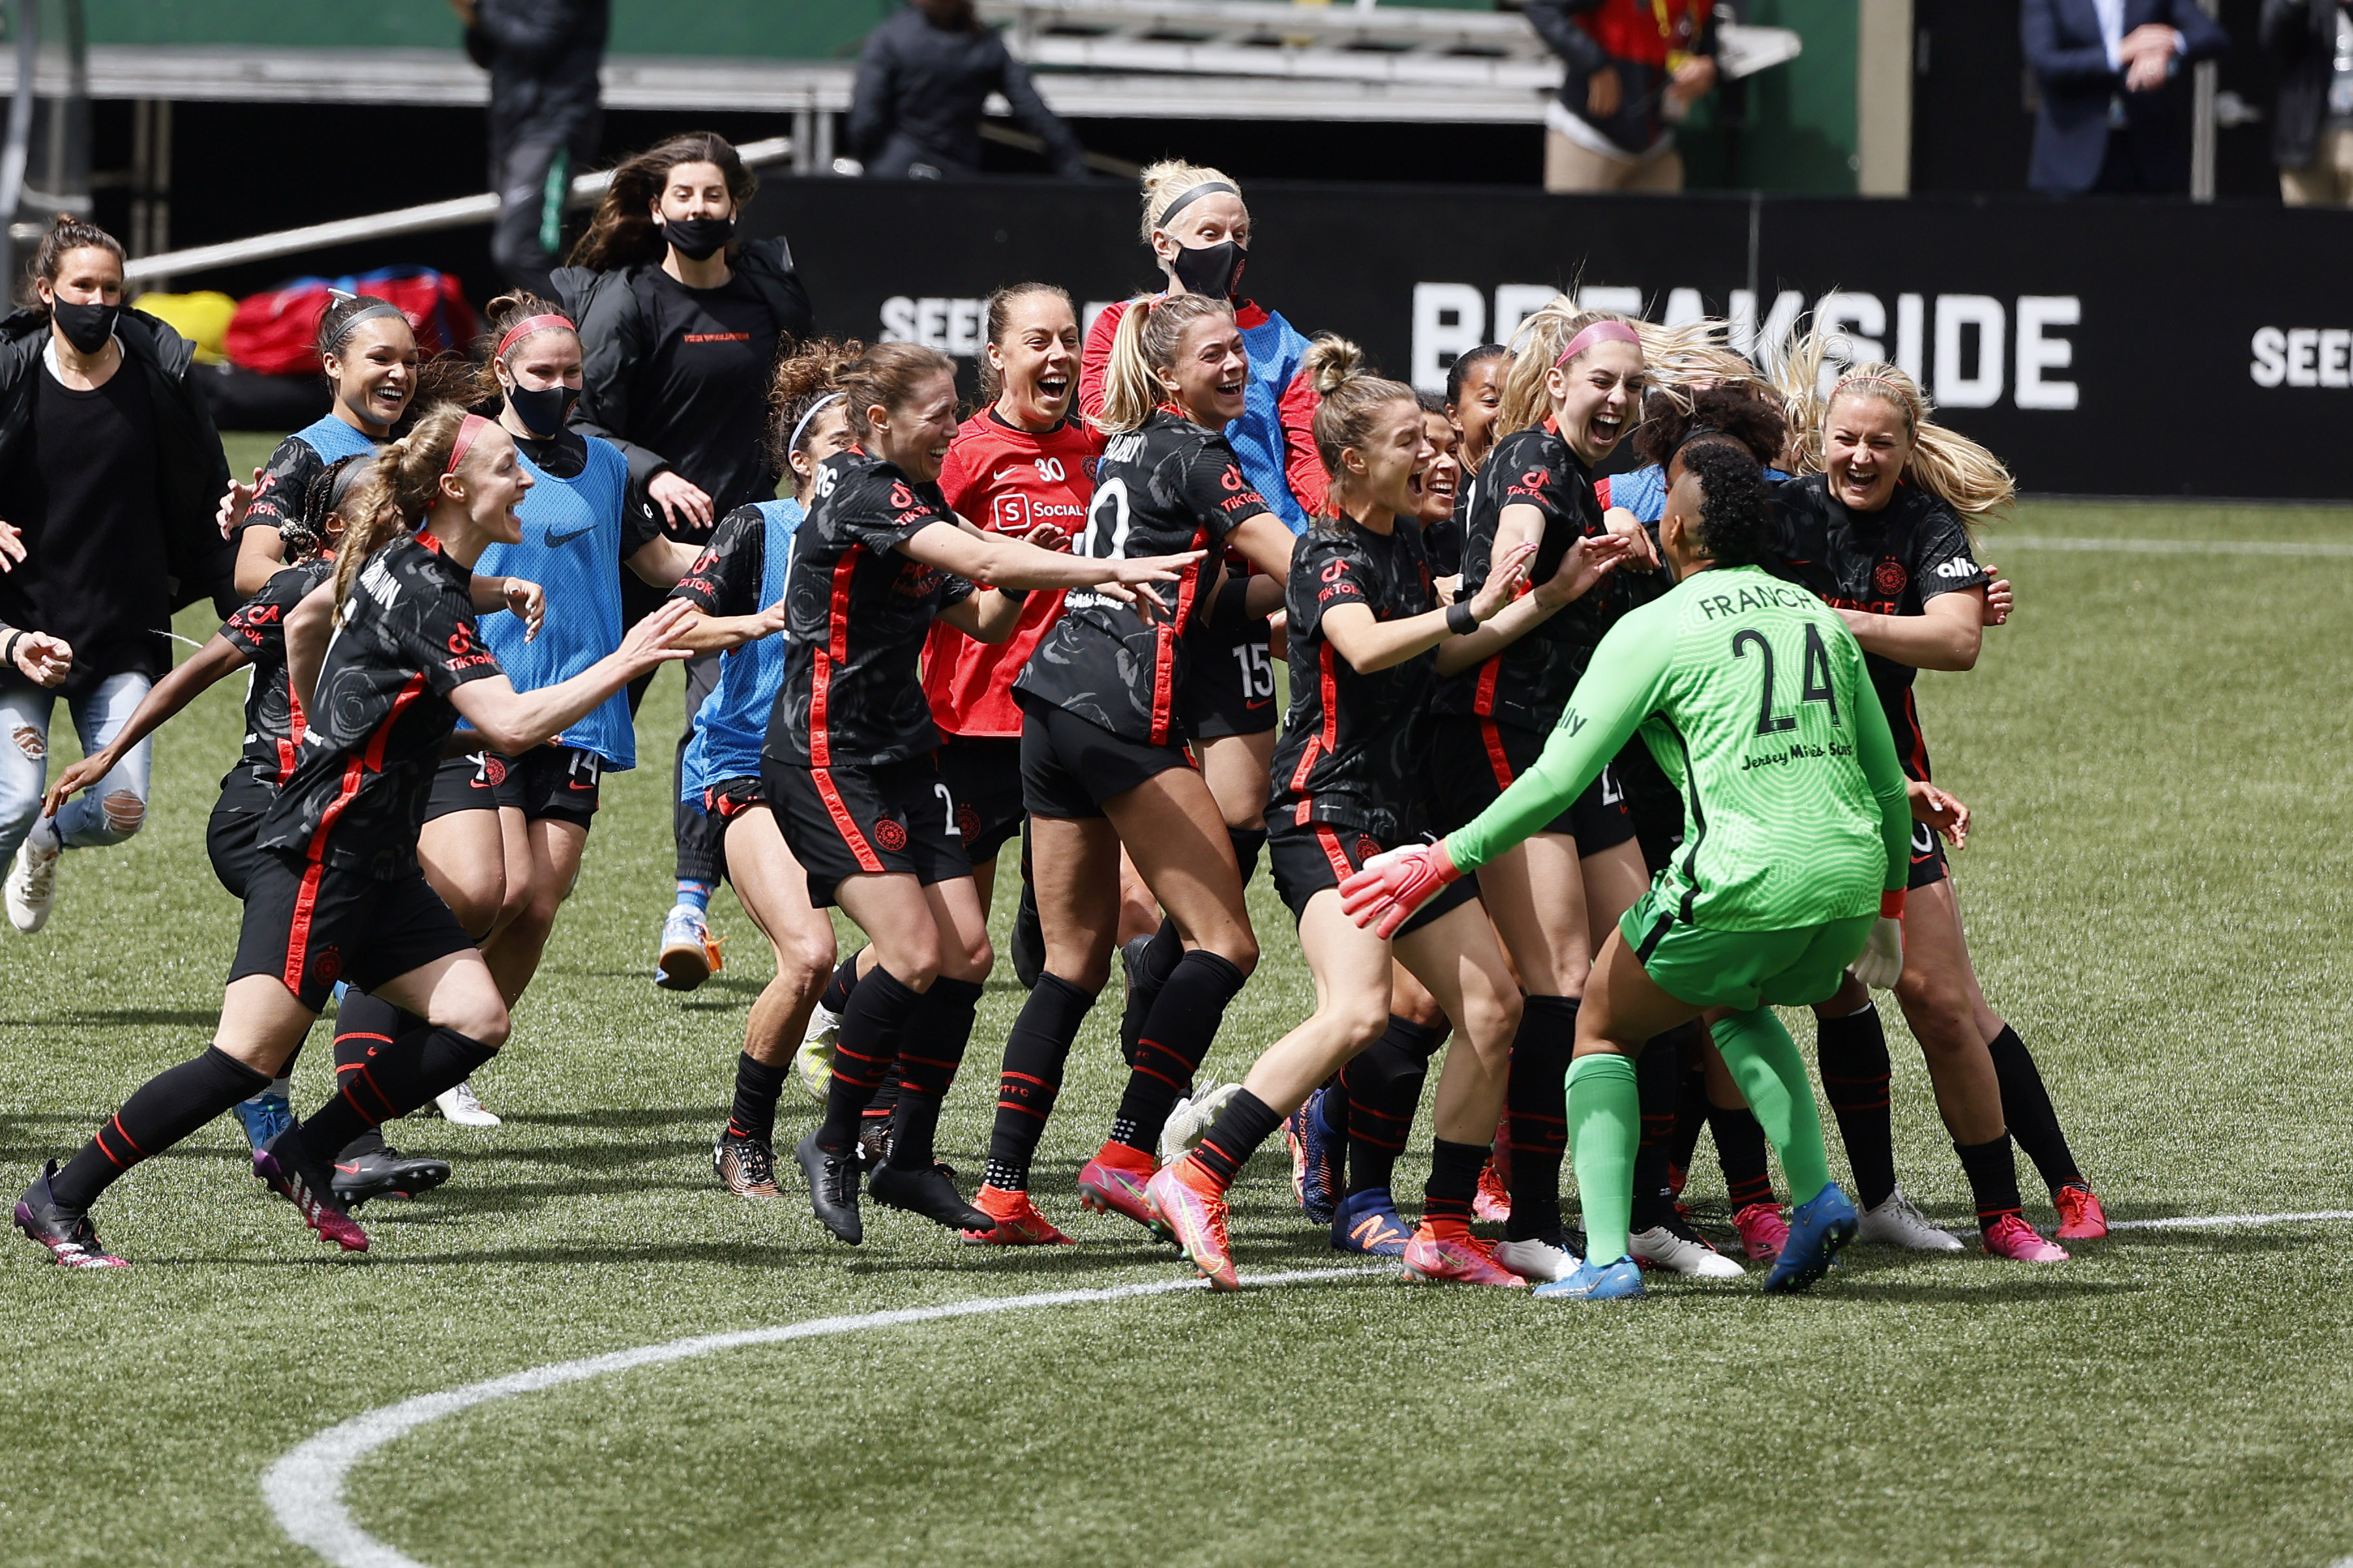 May 8, 2021; Portland, Oregon, USA; Portland Thorns goalkeeper Adrianna Franch (24) reacts with teammates after blocking a penalty shot by NJ/NY Gotham forward Nahomi Kawasumi (9) (not pictured) during the penalty shoot ou at Providence Park. Mandatory Credit: Soobum Im-USA TODAY Sports